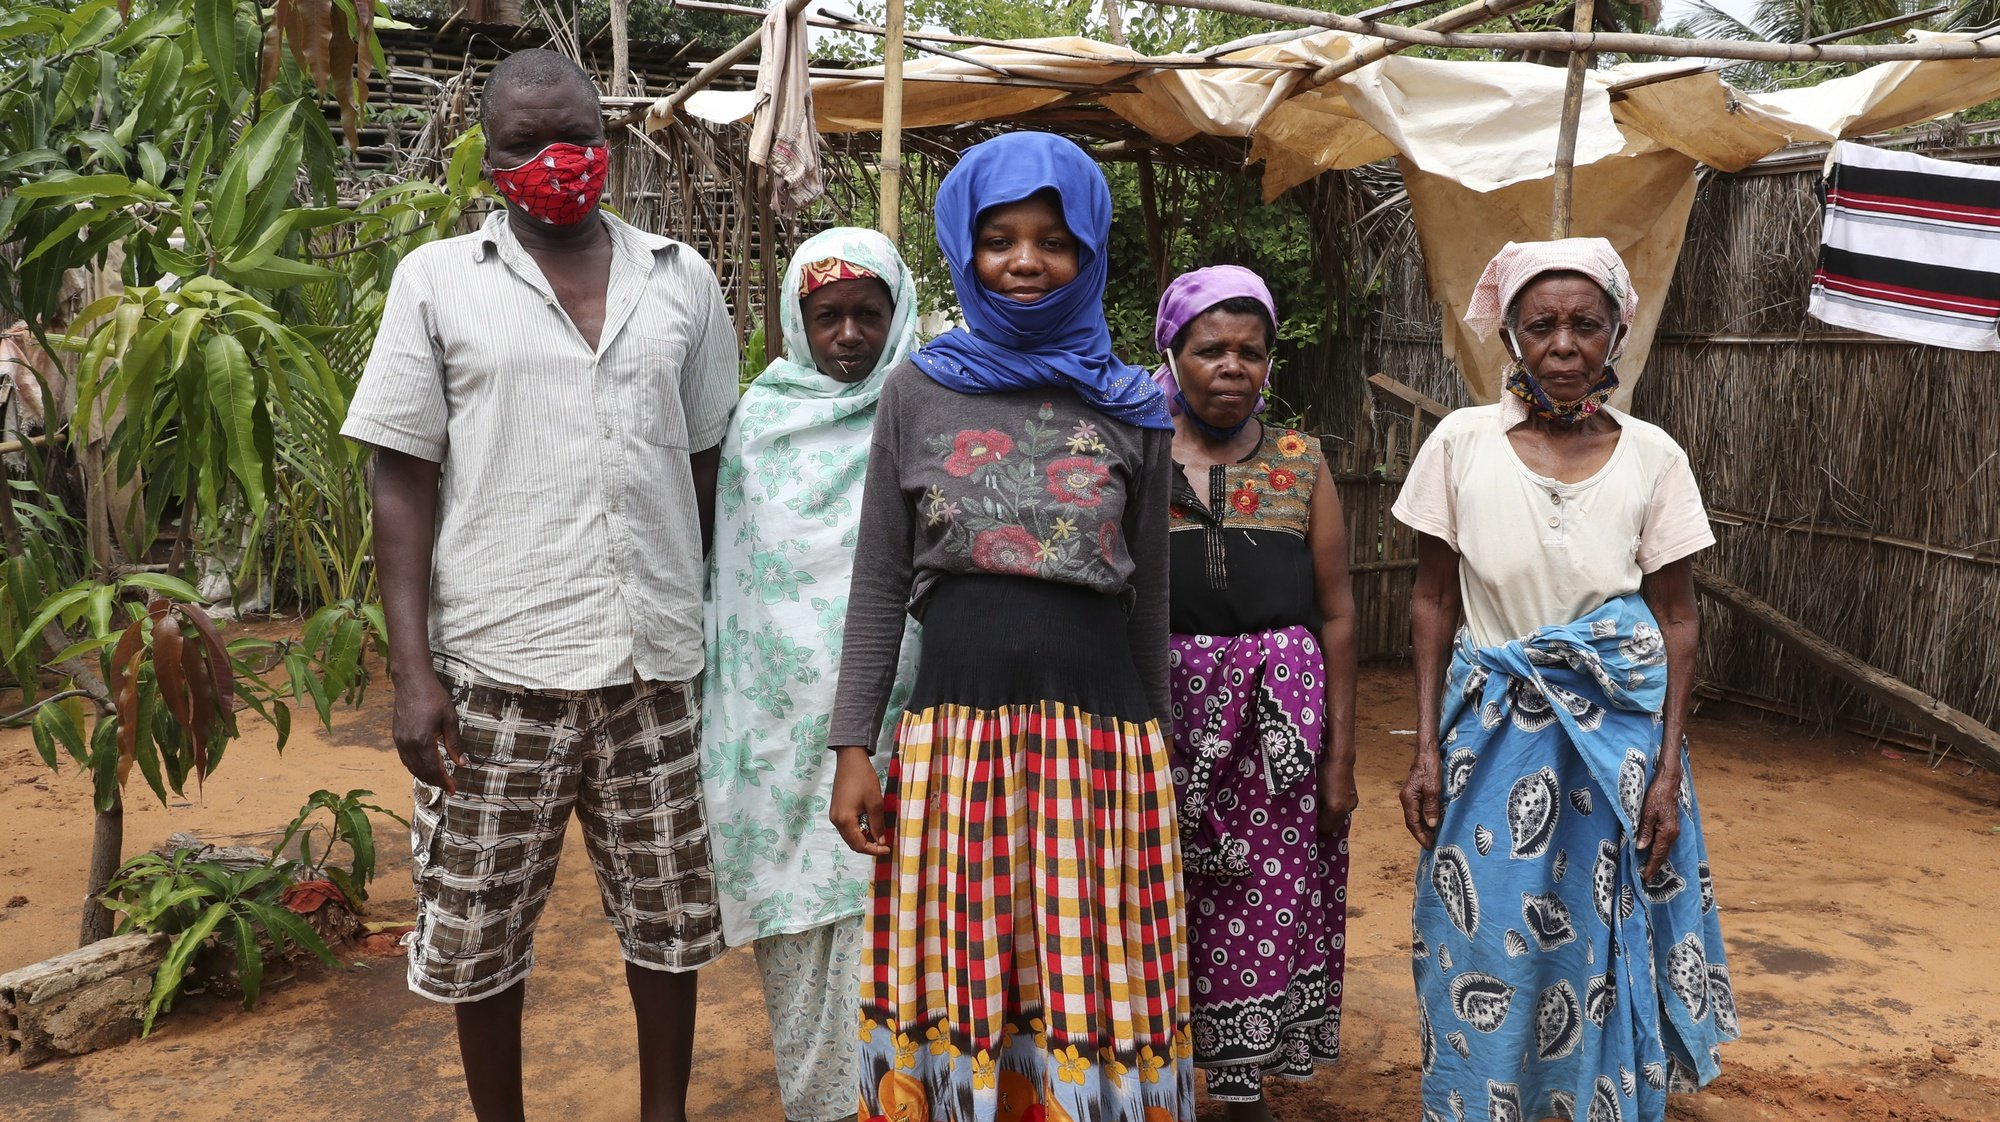 epa09133250 Ubaia Ureli (L) and his wife Mungui Anli (2-L) lost contact with the rest of their family during the conflicts and live in a house with 3 other family members, all displaced from Palma, borrowed from a family friend, Pemba, Mozambique, 13 April 2021. Armed violence in Cabo Delgado began more than three years ago, but escalated again two weeks ago when armed groups first attacked the village of Palma, which is about six kilometers from the multimillion-dollar natural gas projects.  EPA/JOAO RELVAS